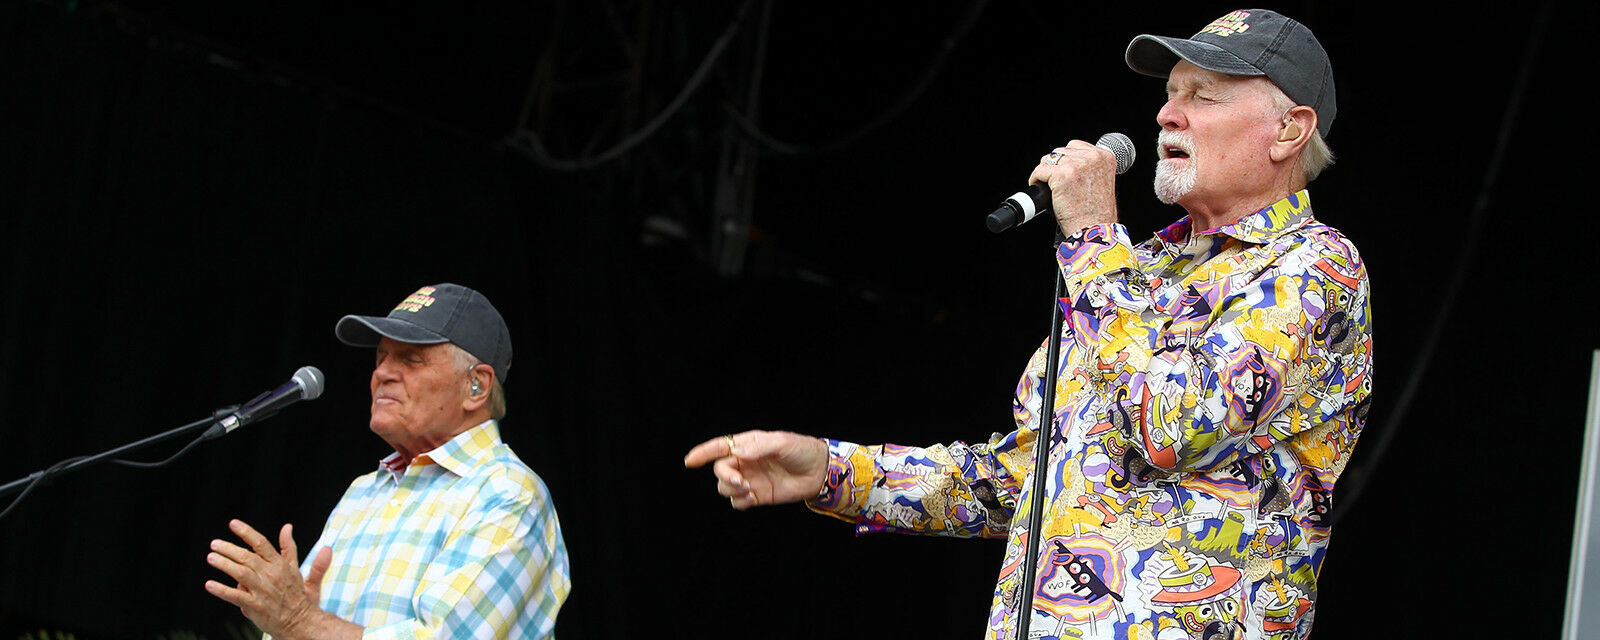 Mike Love and Bruce Johnstons Beach Boys